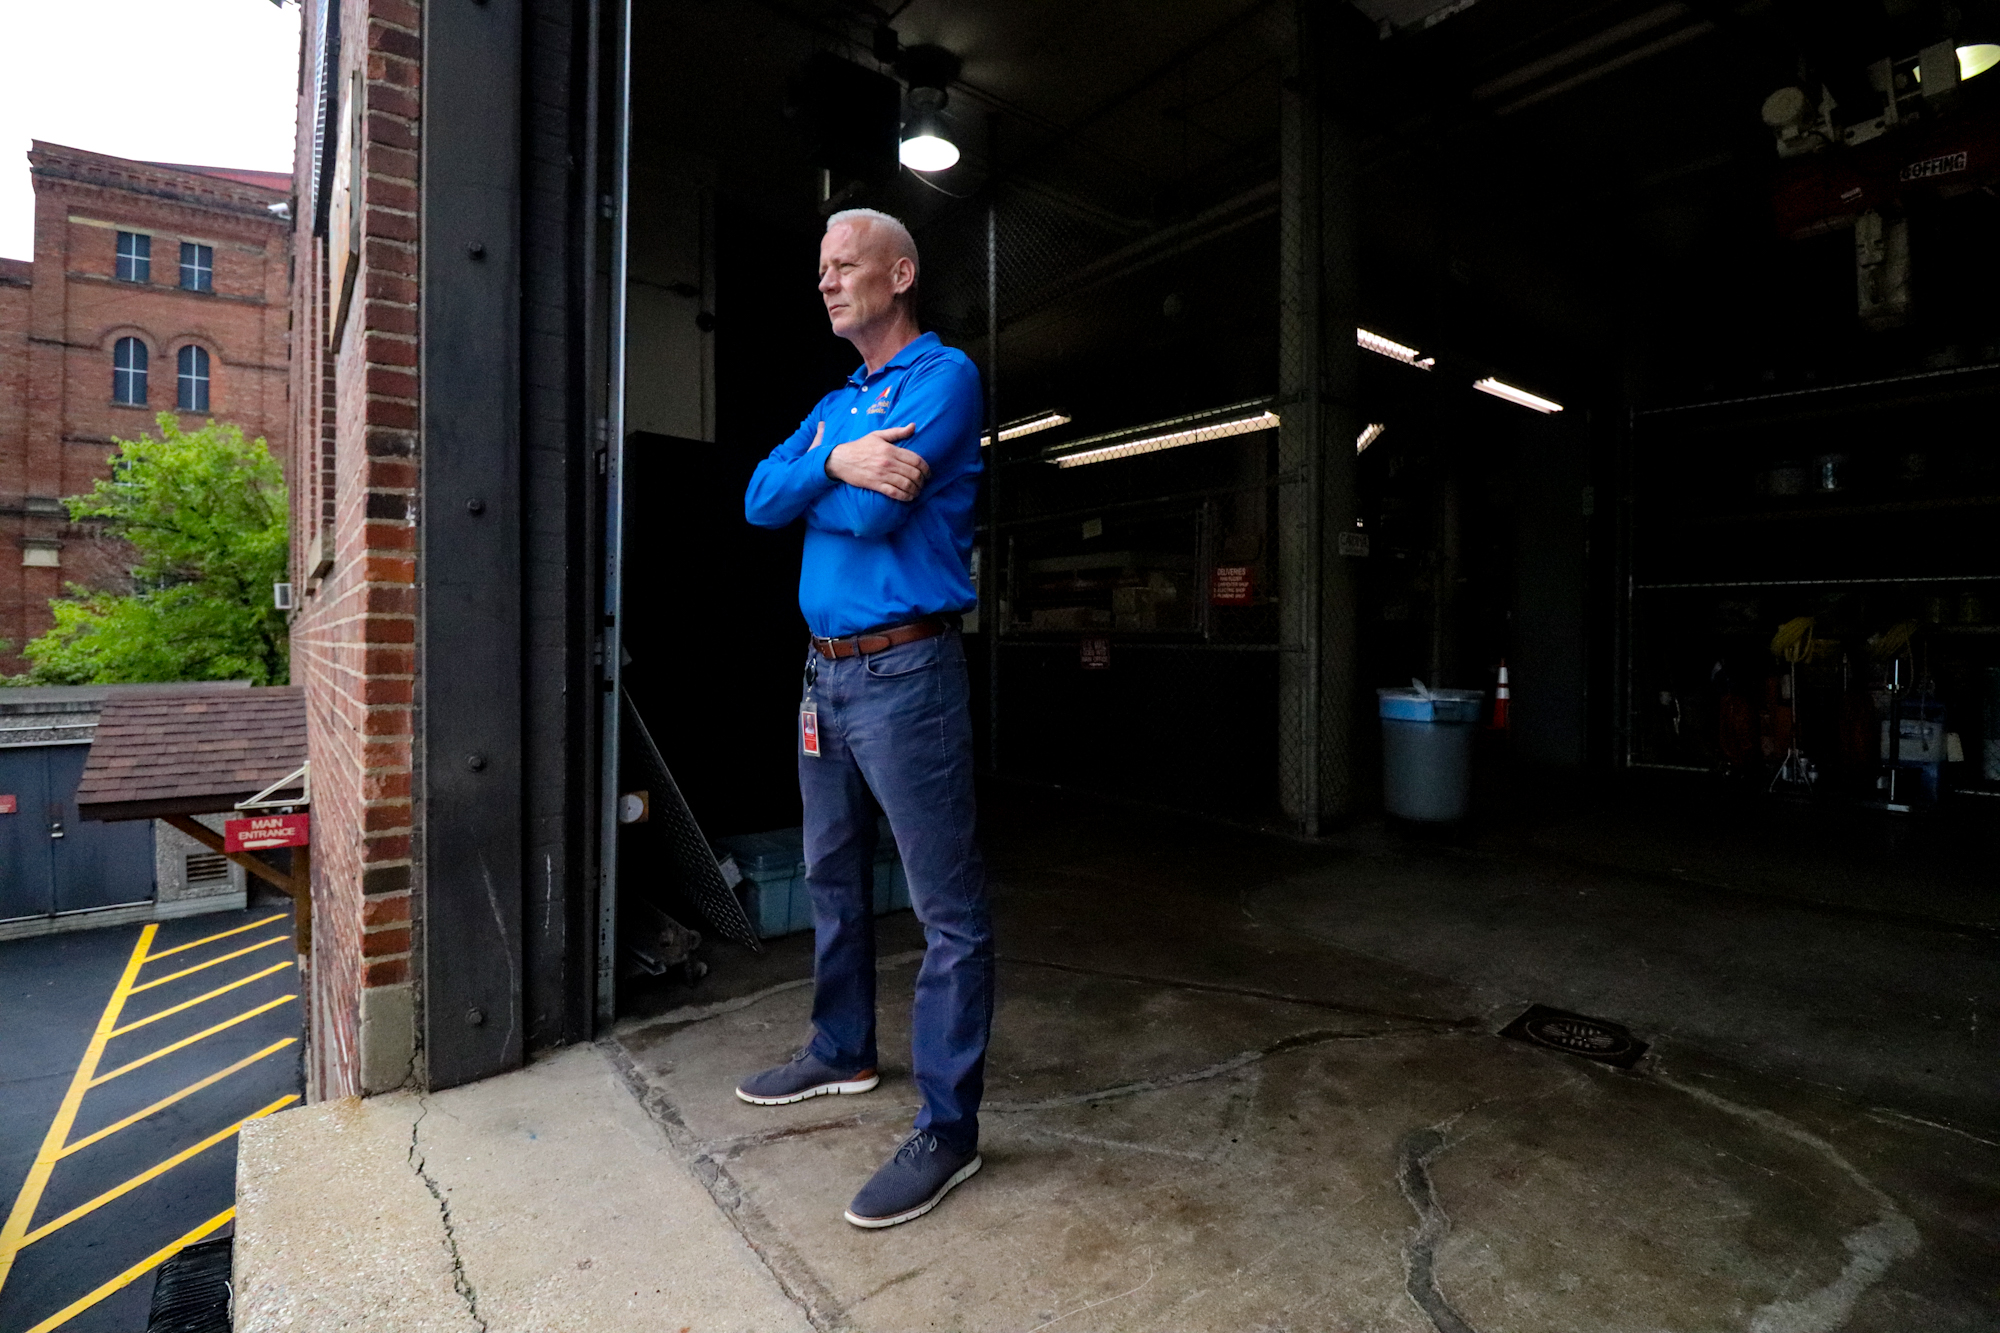 Custodians adapt to pandemic guidelines to keep Akron's schools safe